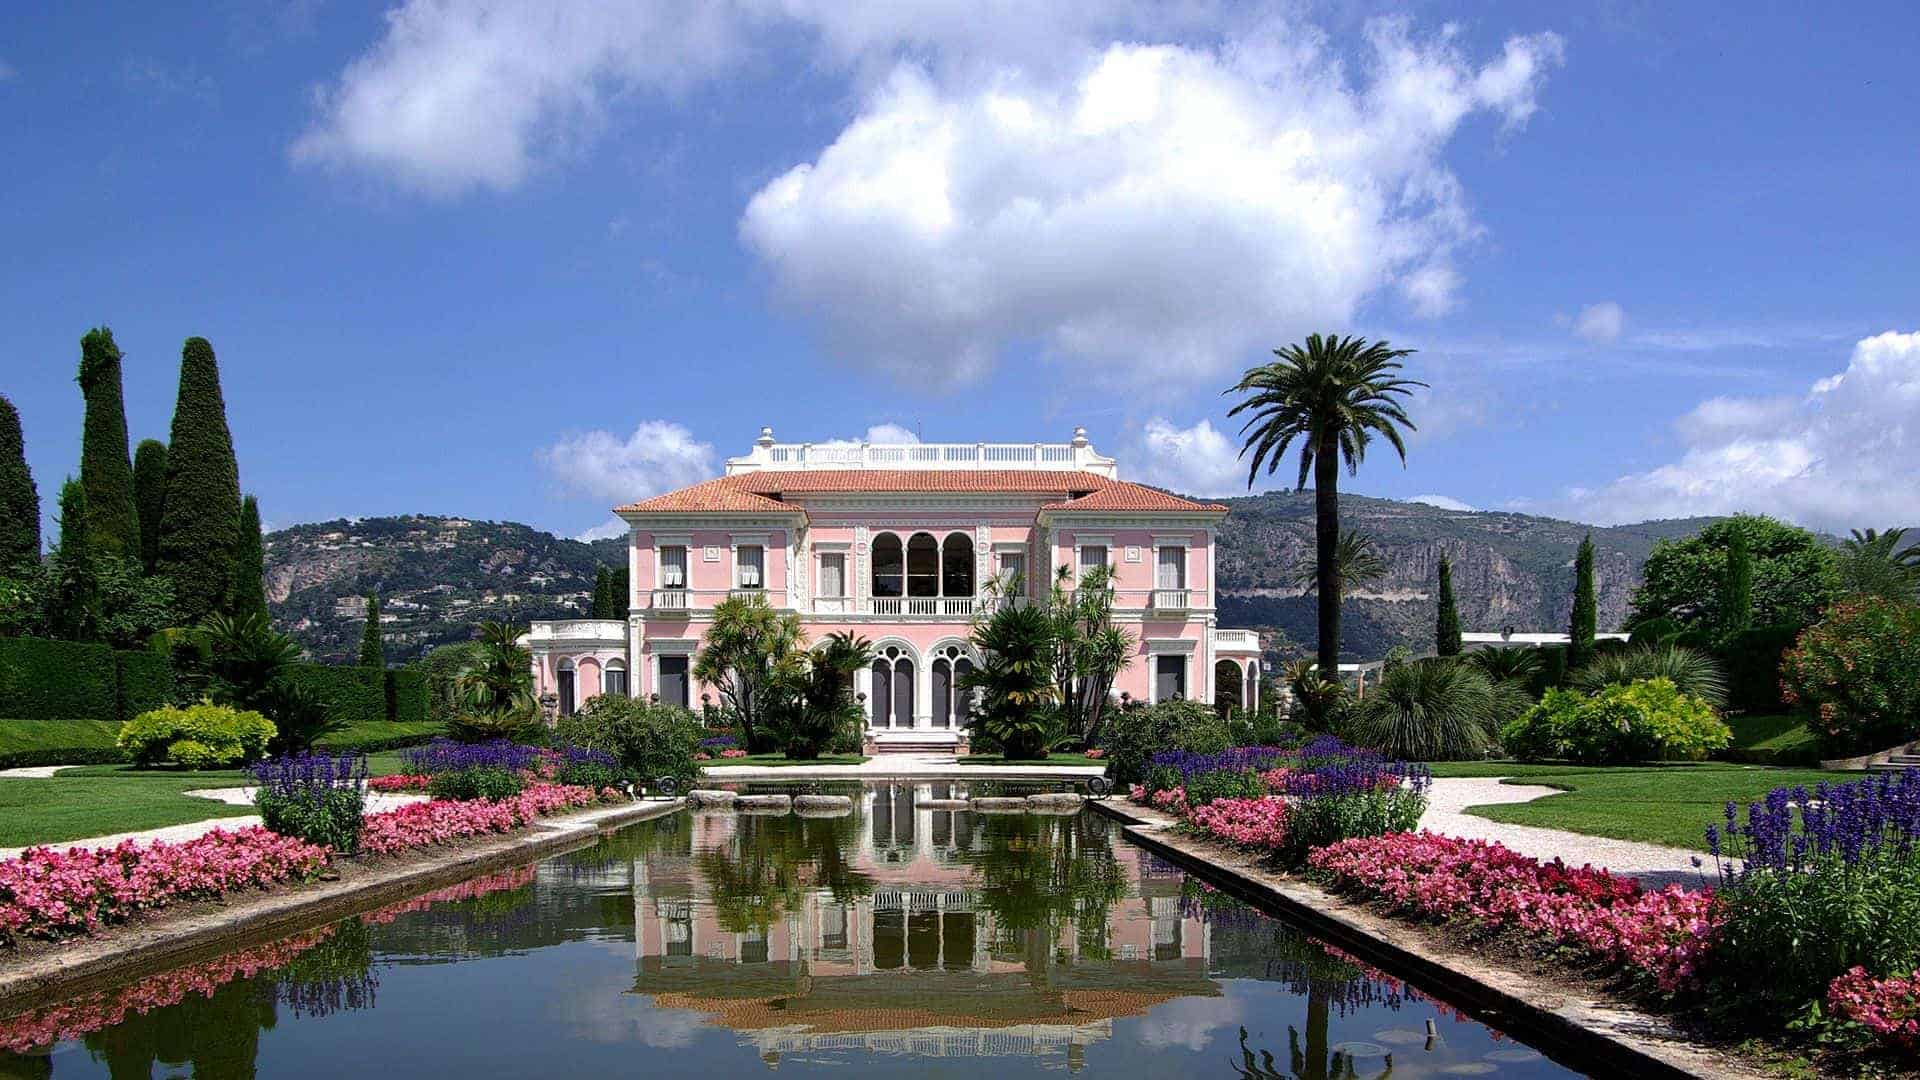 The Wonderful Gardens of the Villa Ephrussi De Rothschild